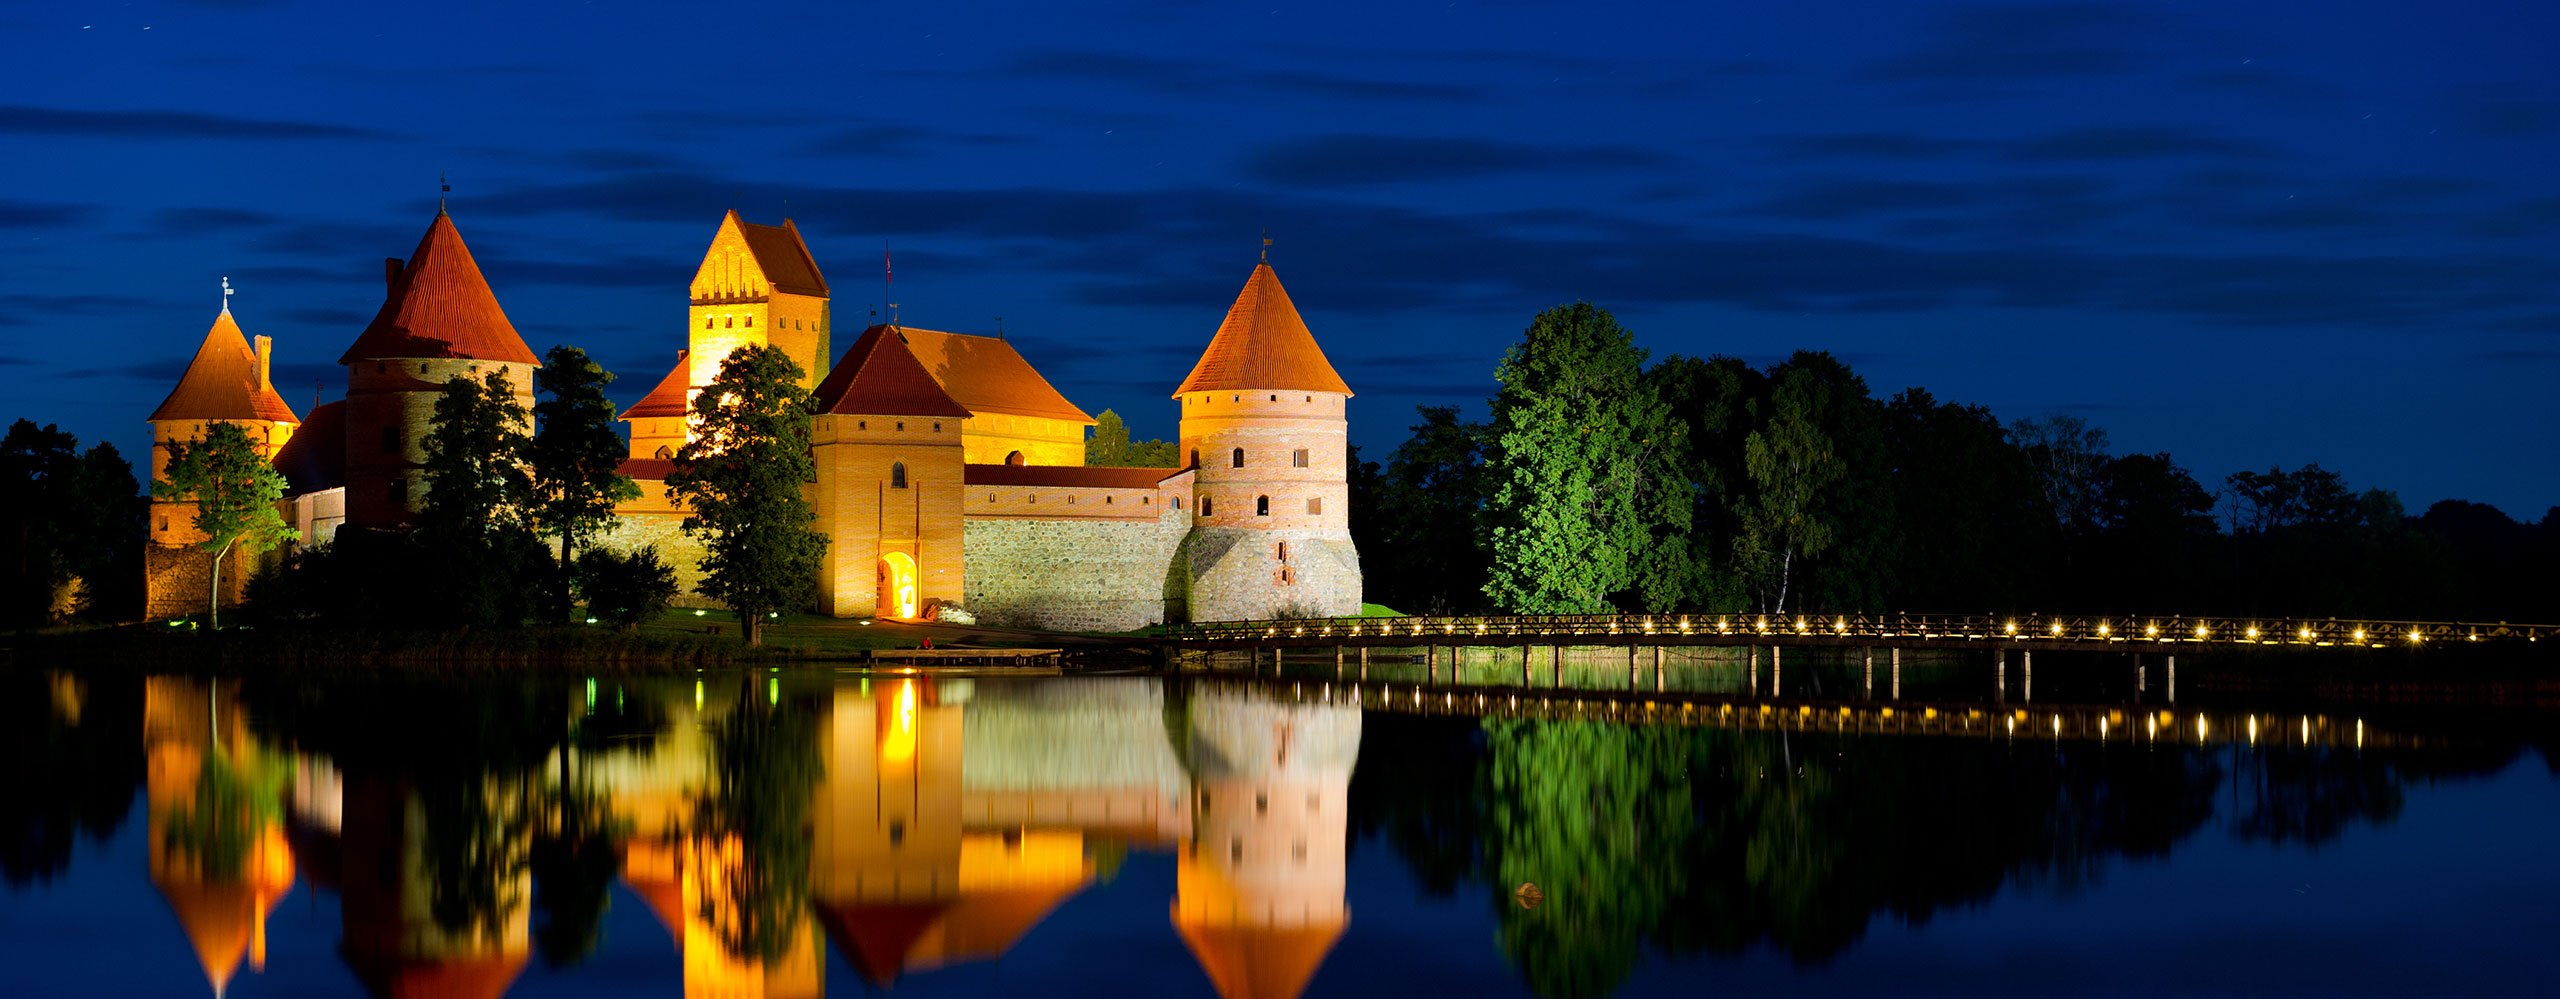 car hire rental lithuania castle at night